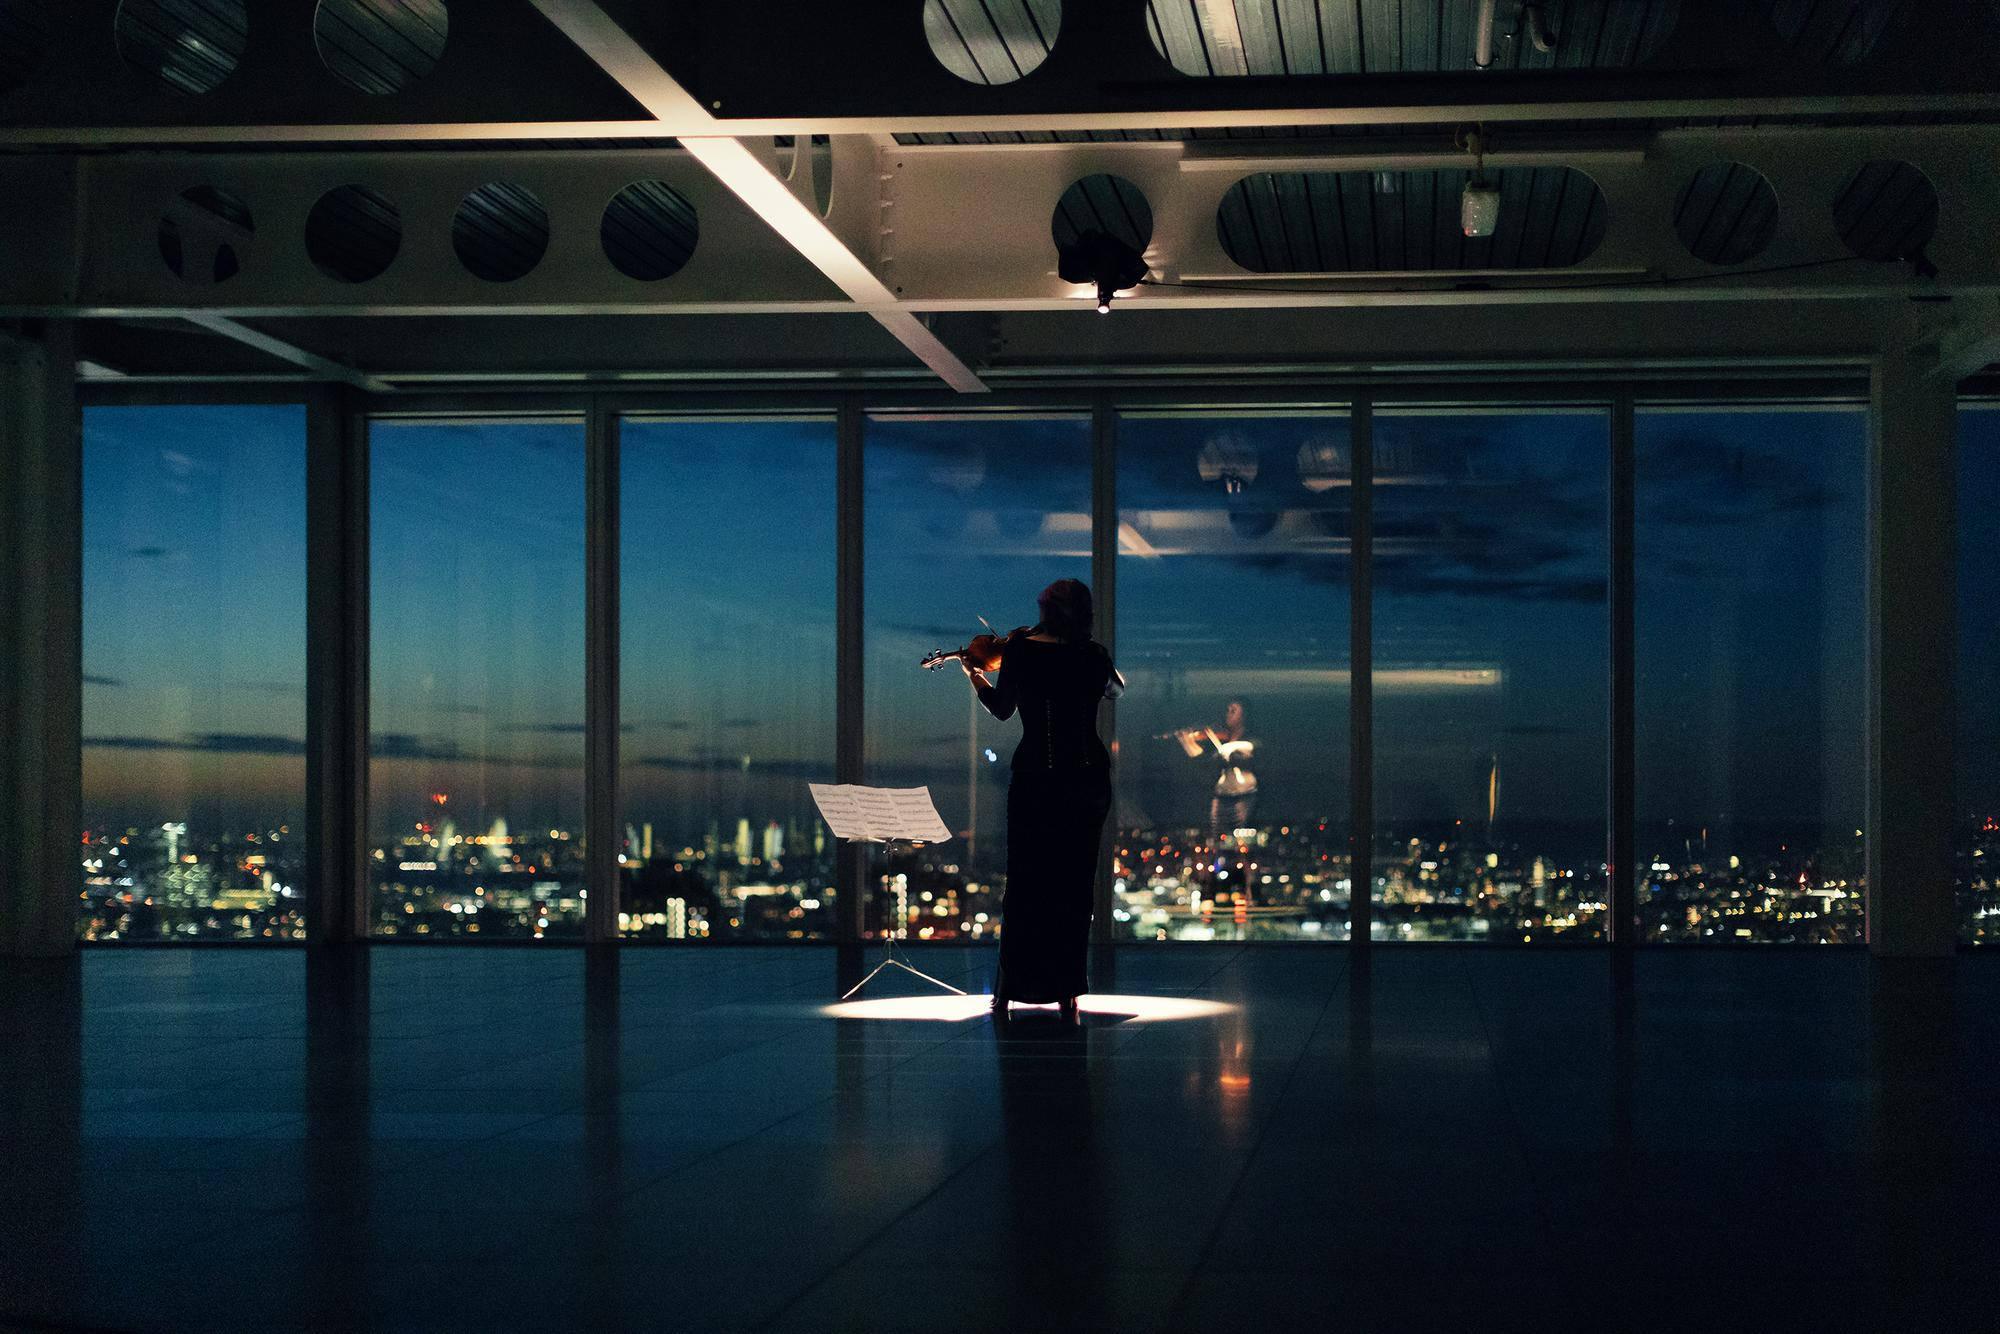 Woman playing violin in empty room at night with city skyline showing through window